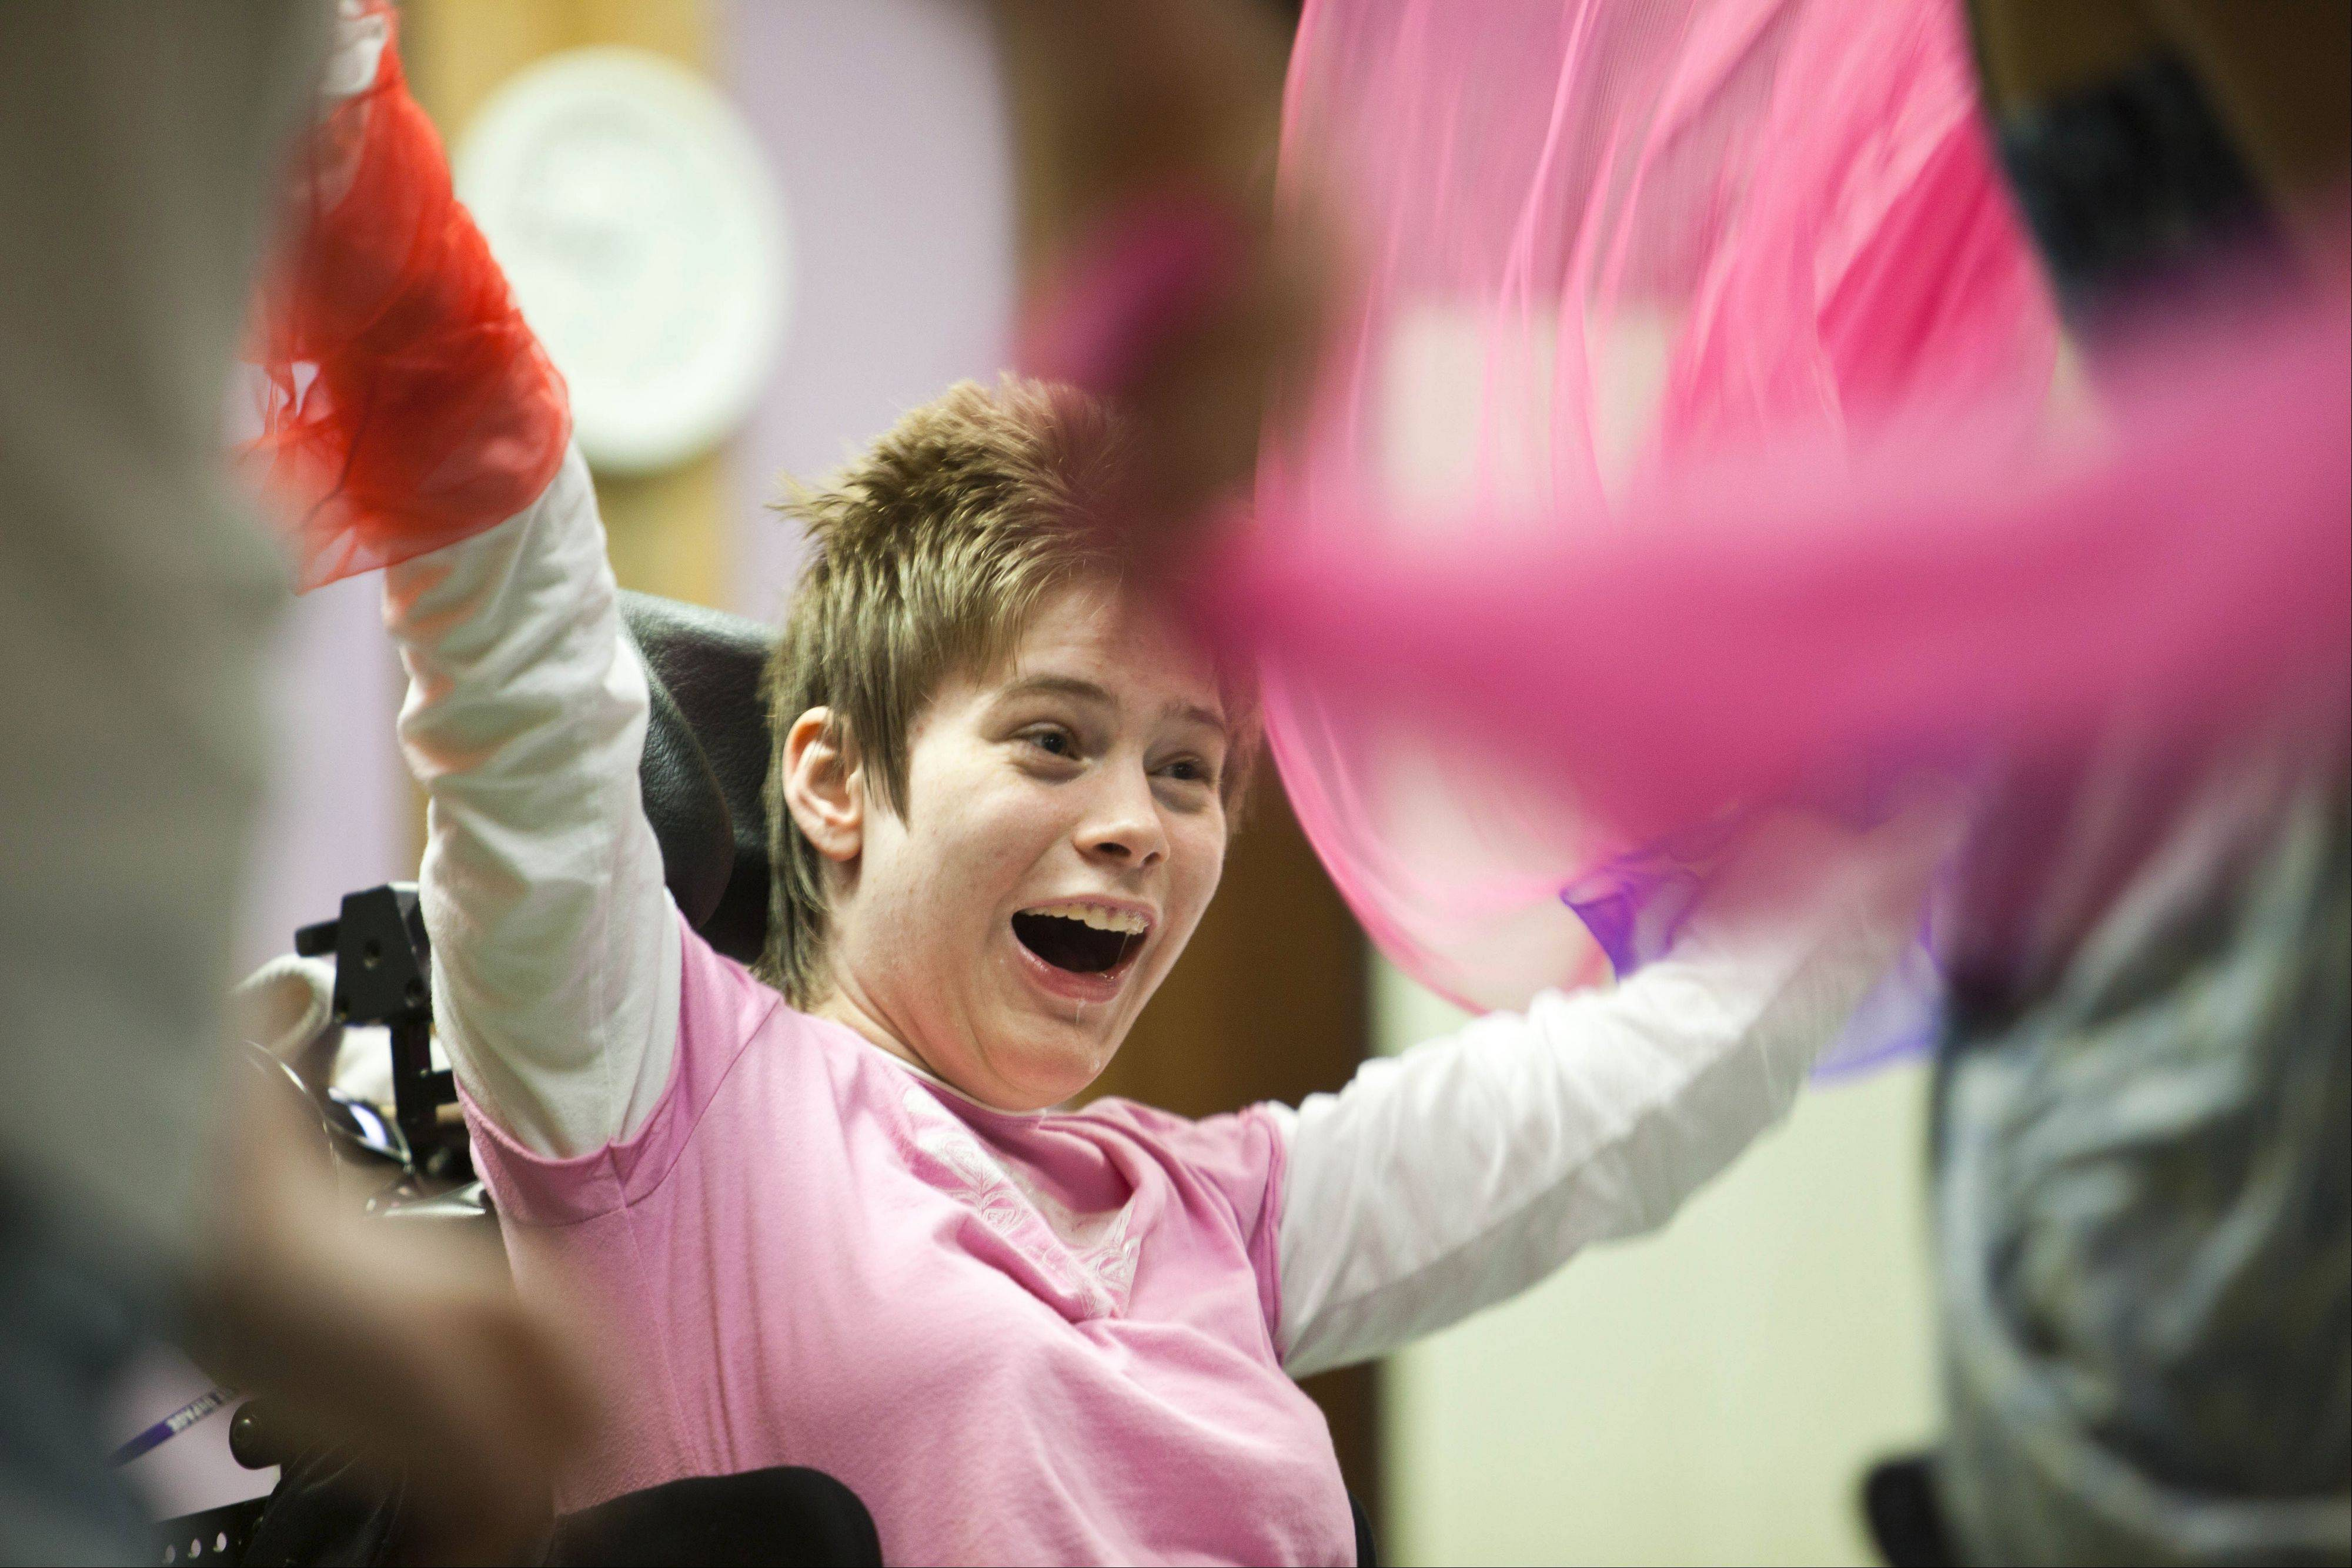 Artful Impact's Spectrum programs explore freedom of movement and expression for young people with special needs.